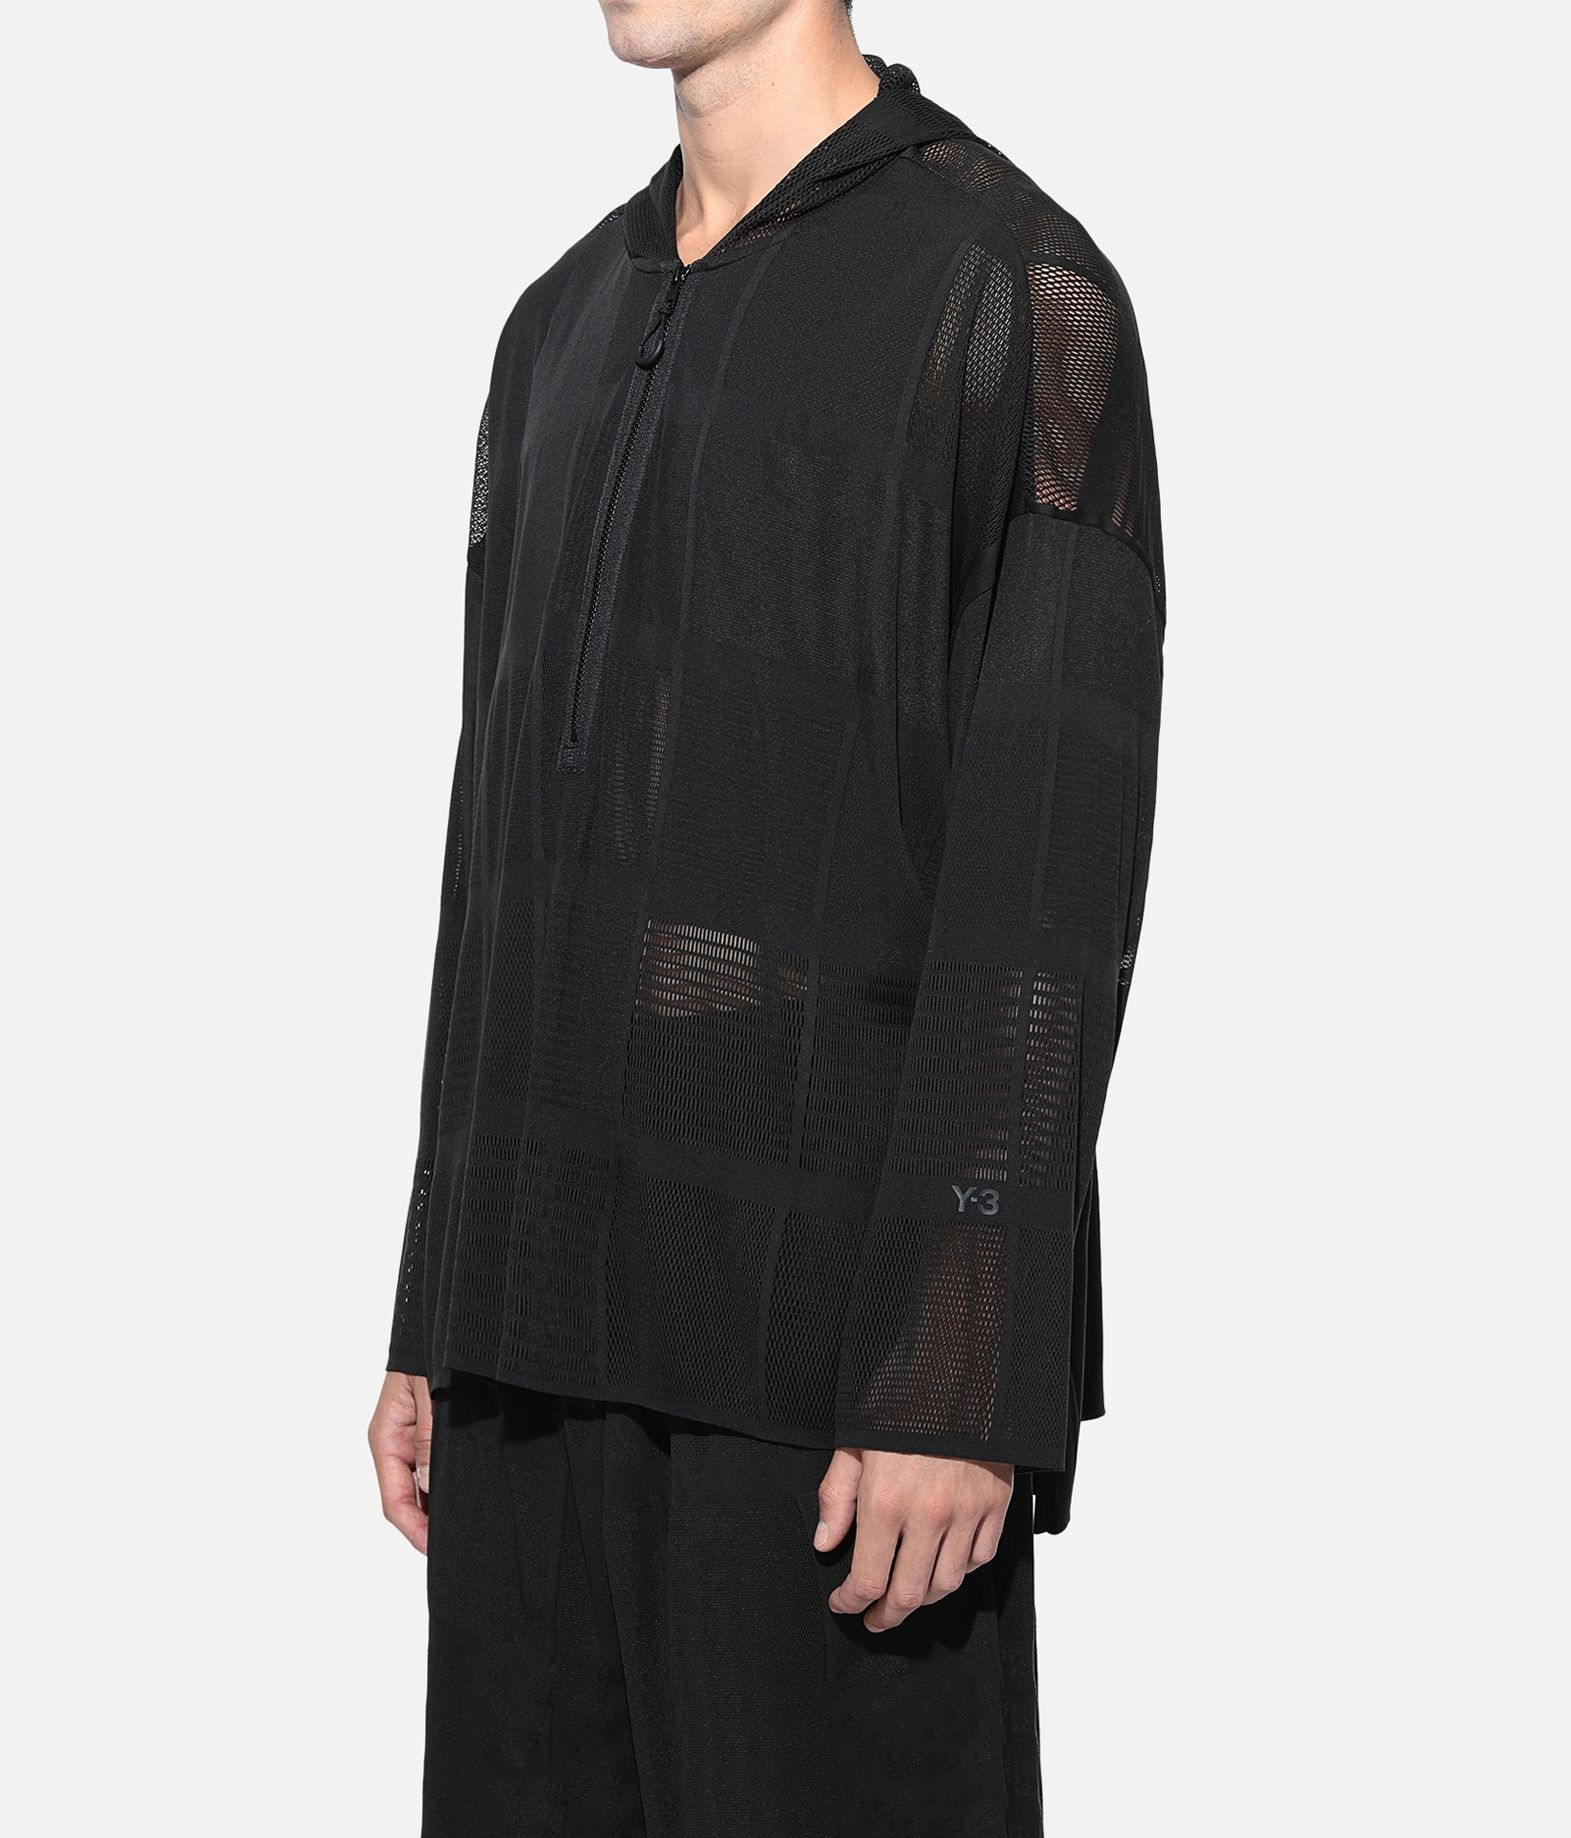 Y-3 Y-3 Patchwork Hoodie Hooded Track Top Man e